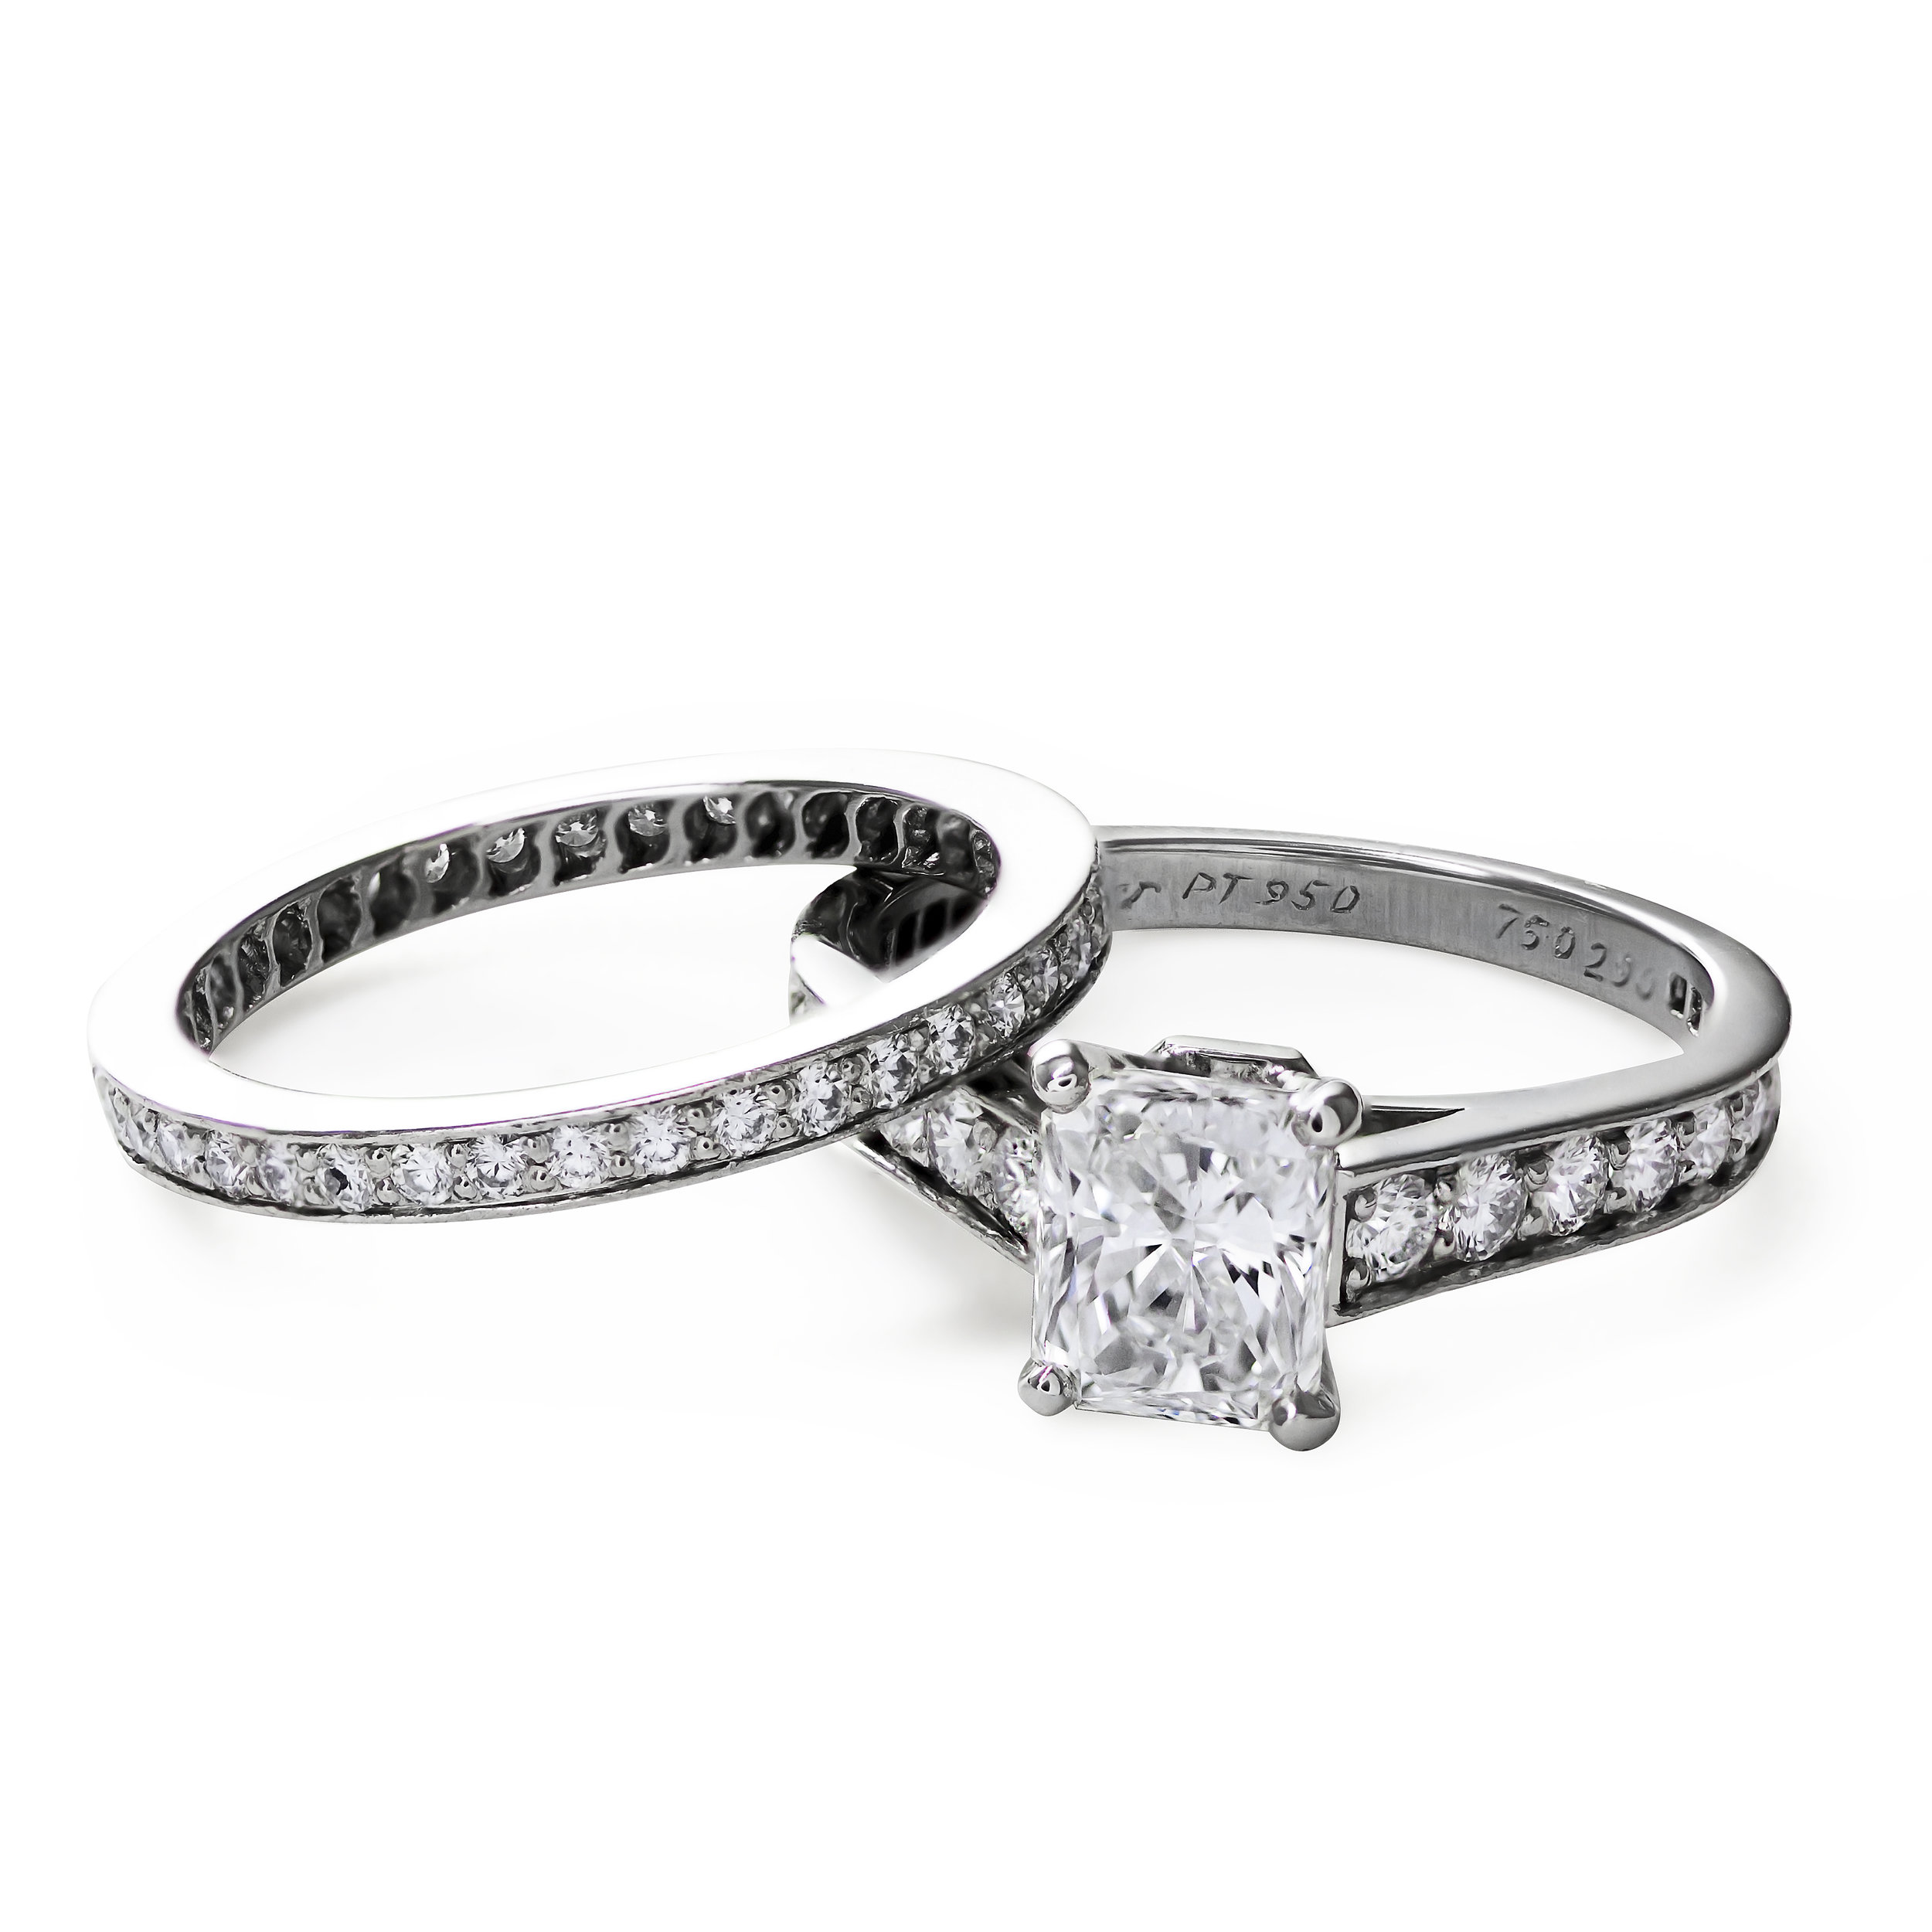 Cartier 1895 Radiant Cut Engagement Ring with a matching channel prong set diamond wedding band